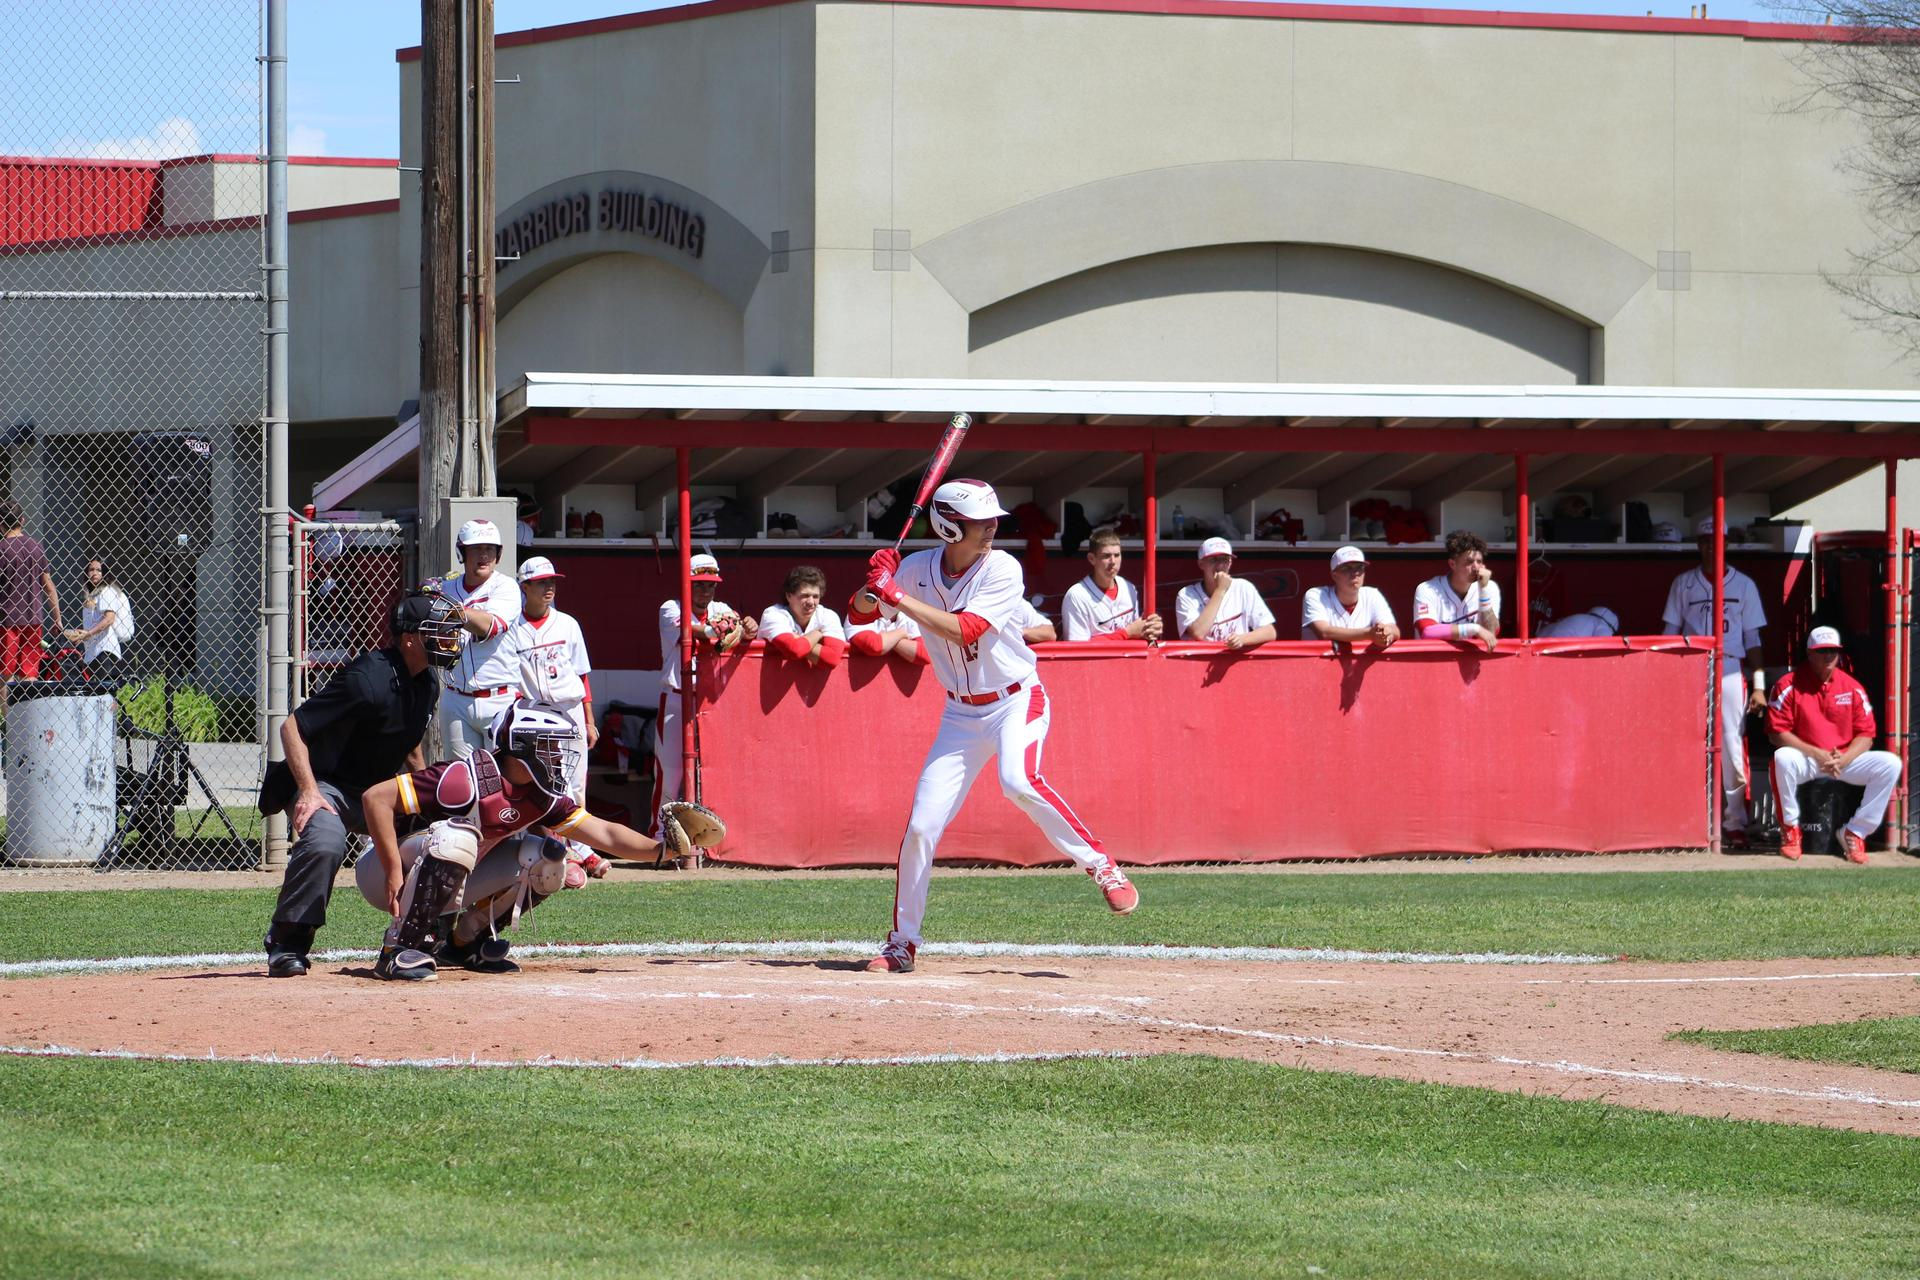 Baseball players in action against Sierra